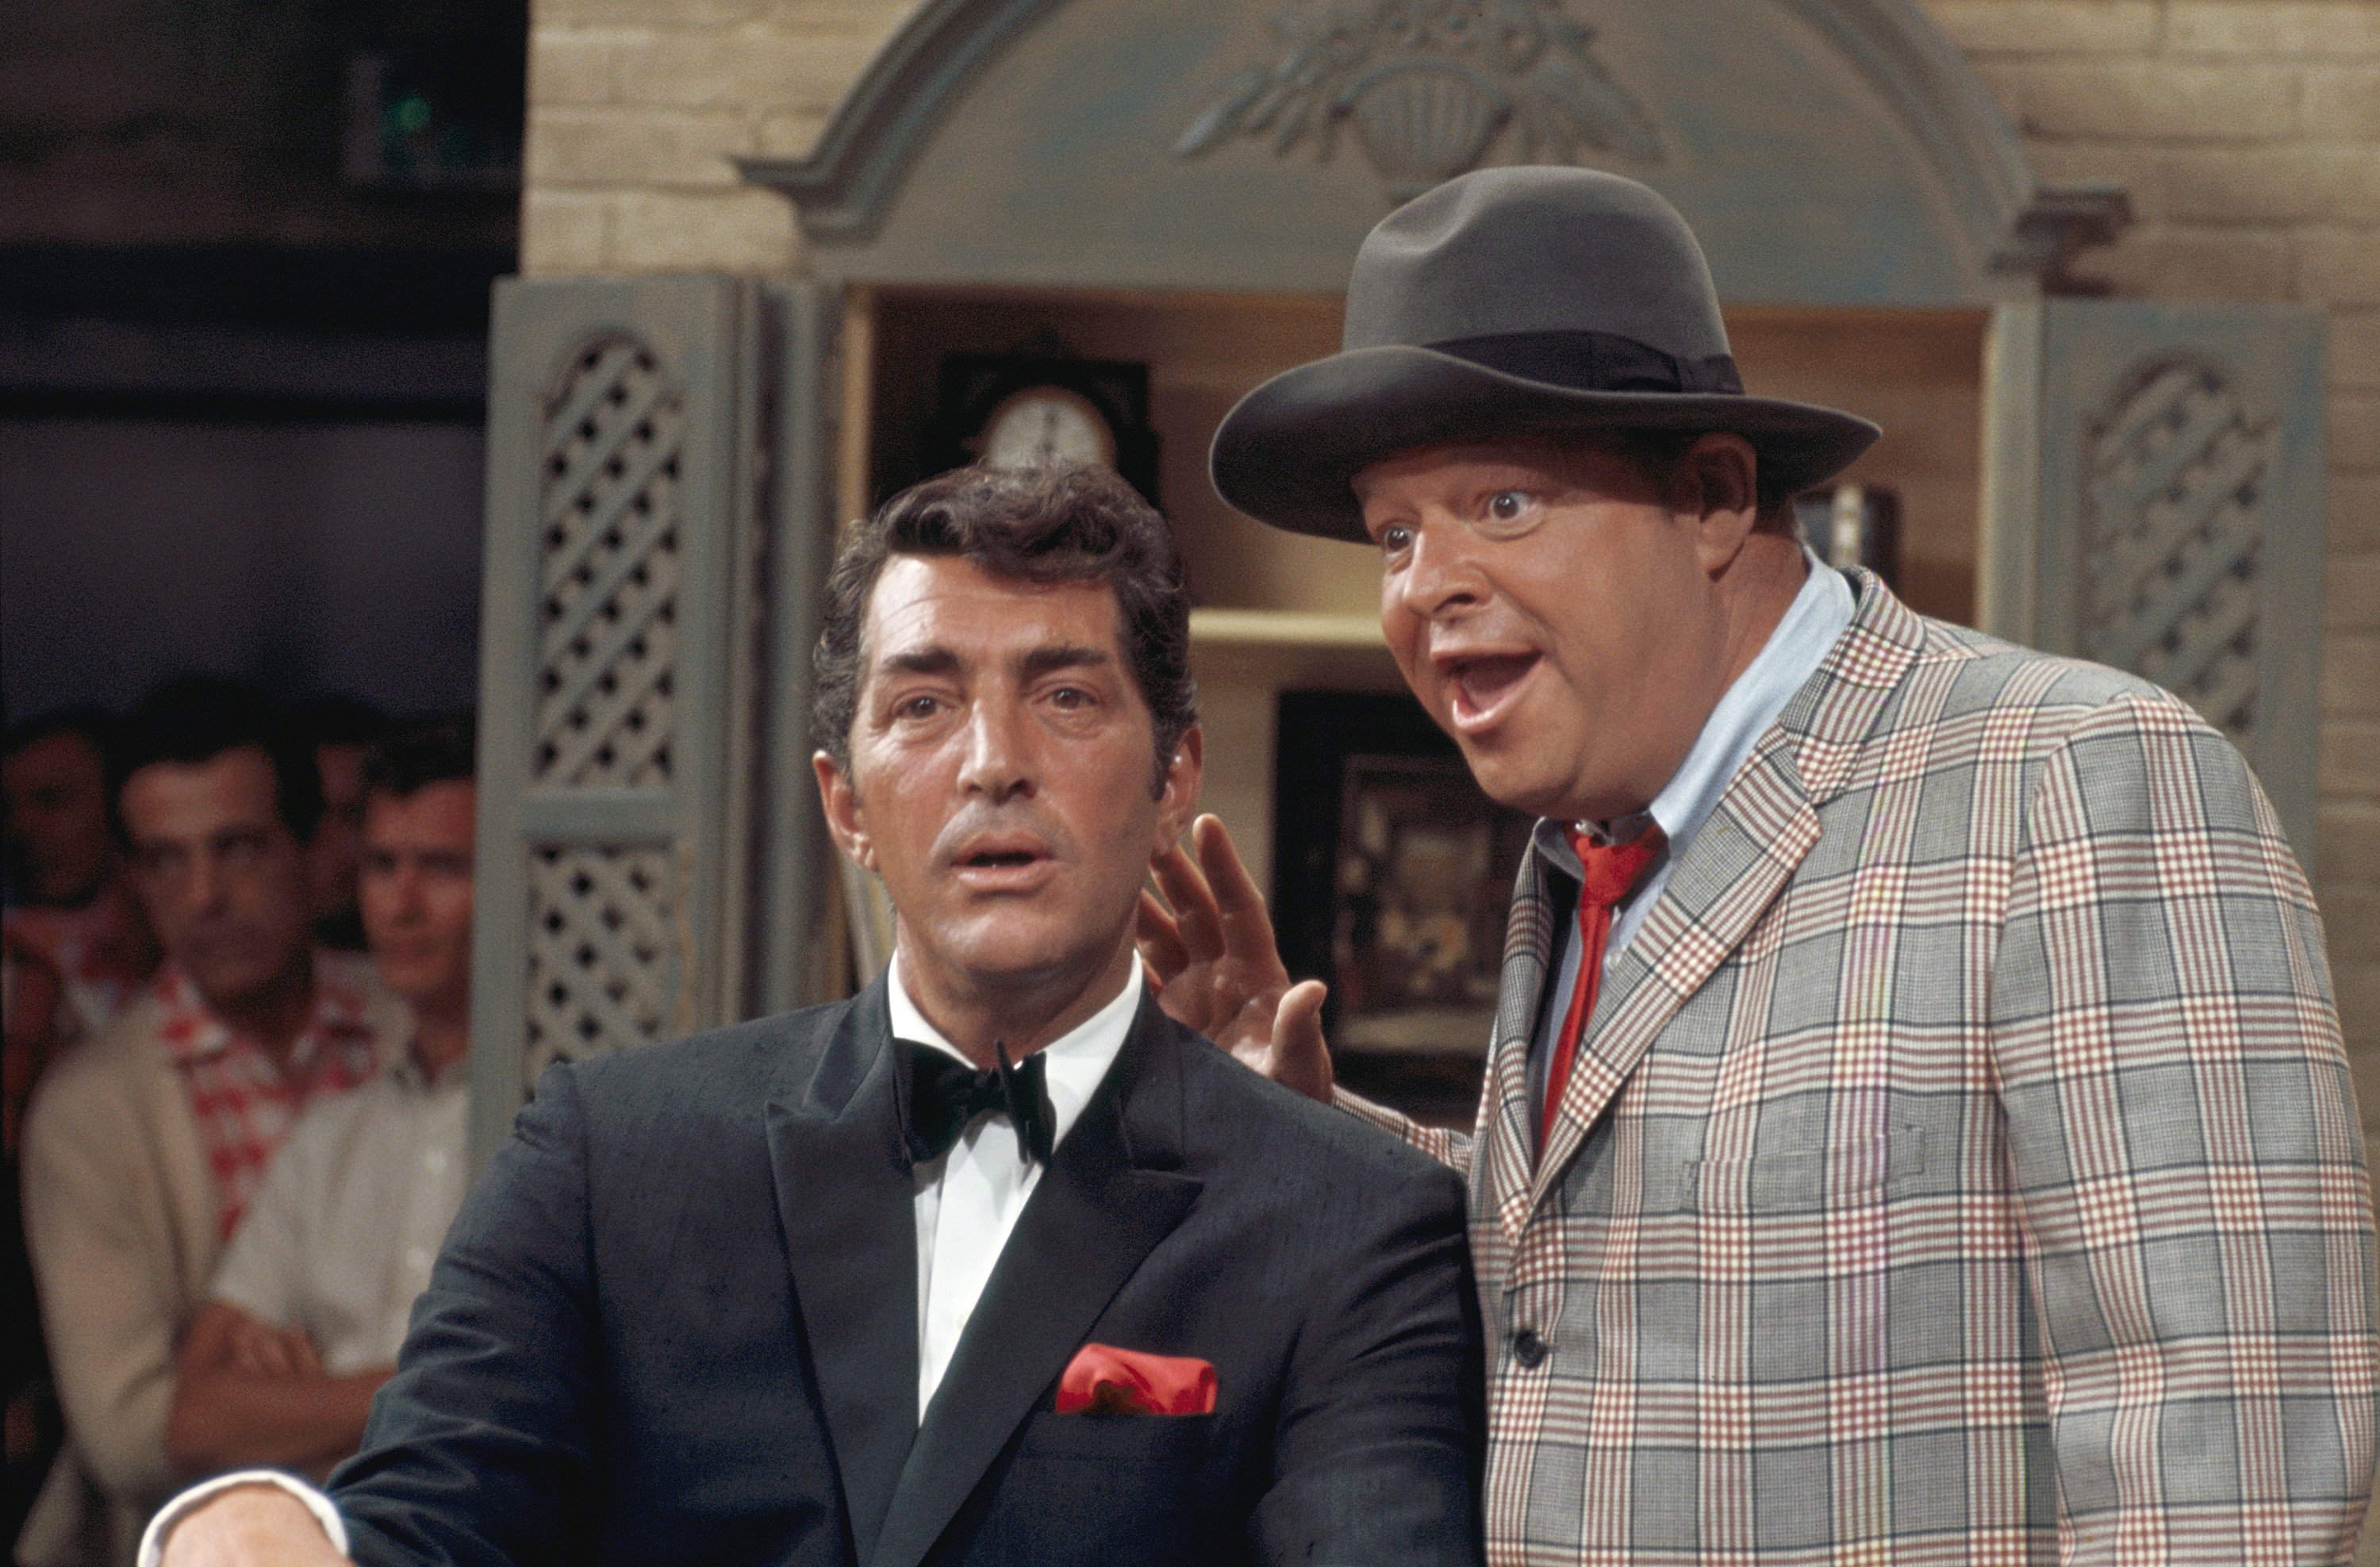 THE DEAN MARTIN SHOW: Host Dean Martin, Frank Fontaine as Crazy Guggenheim.   Source: Getty Images